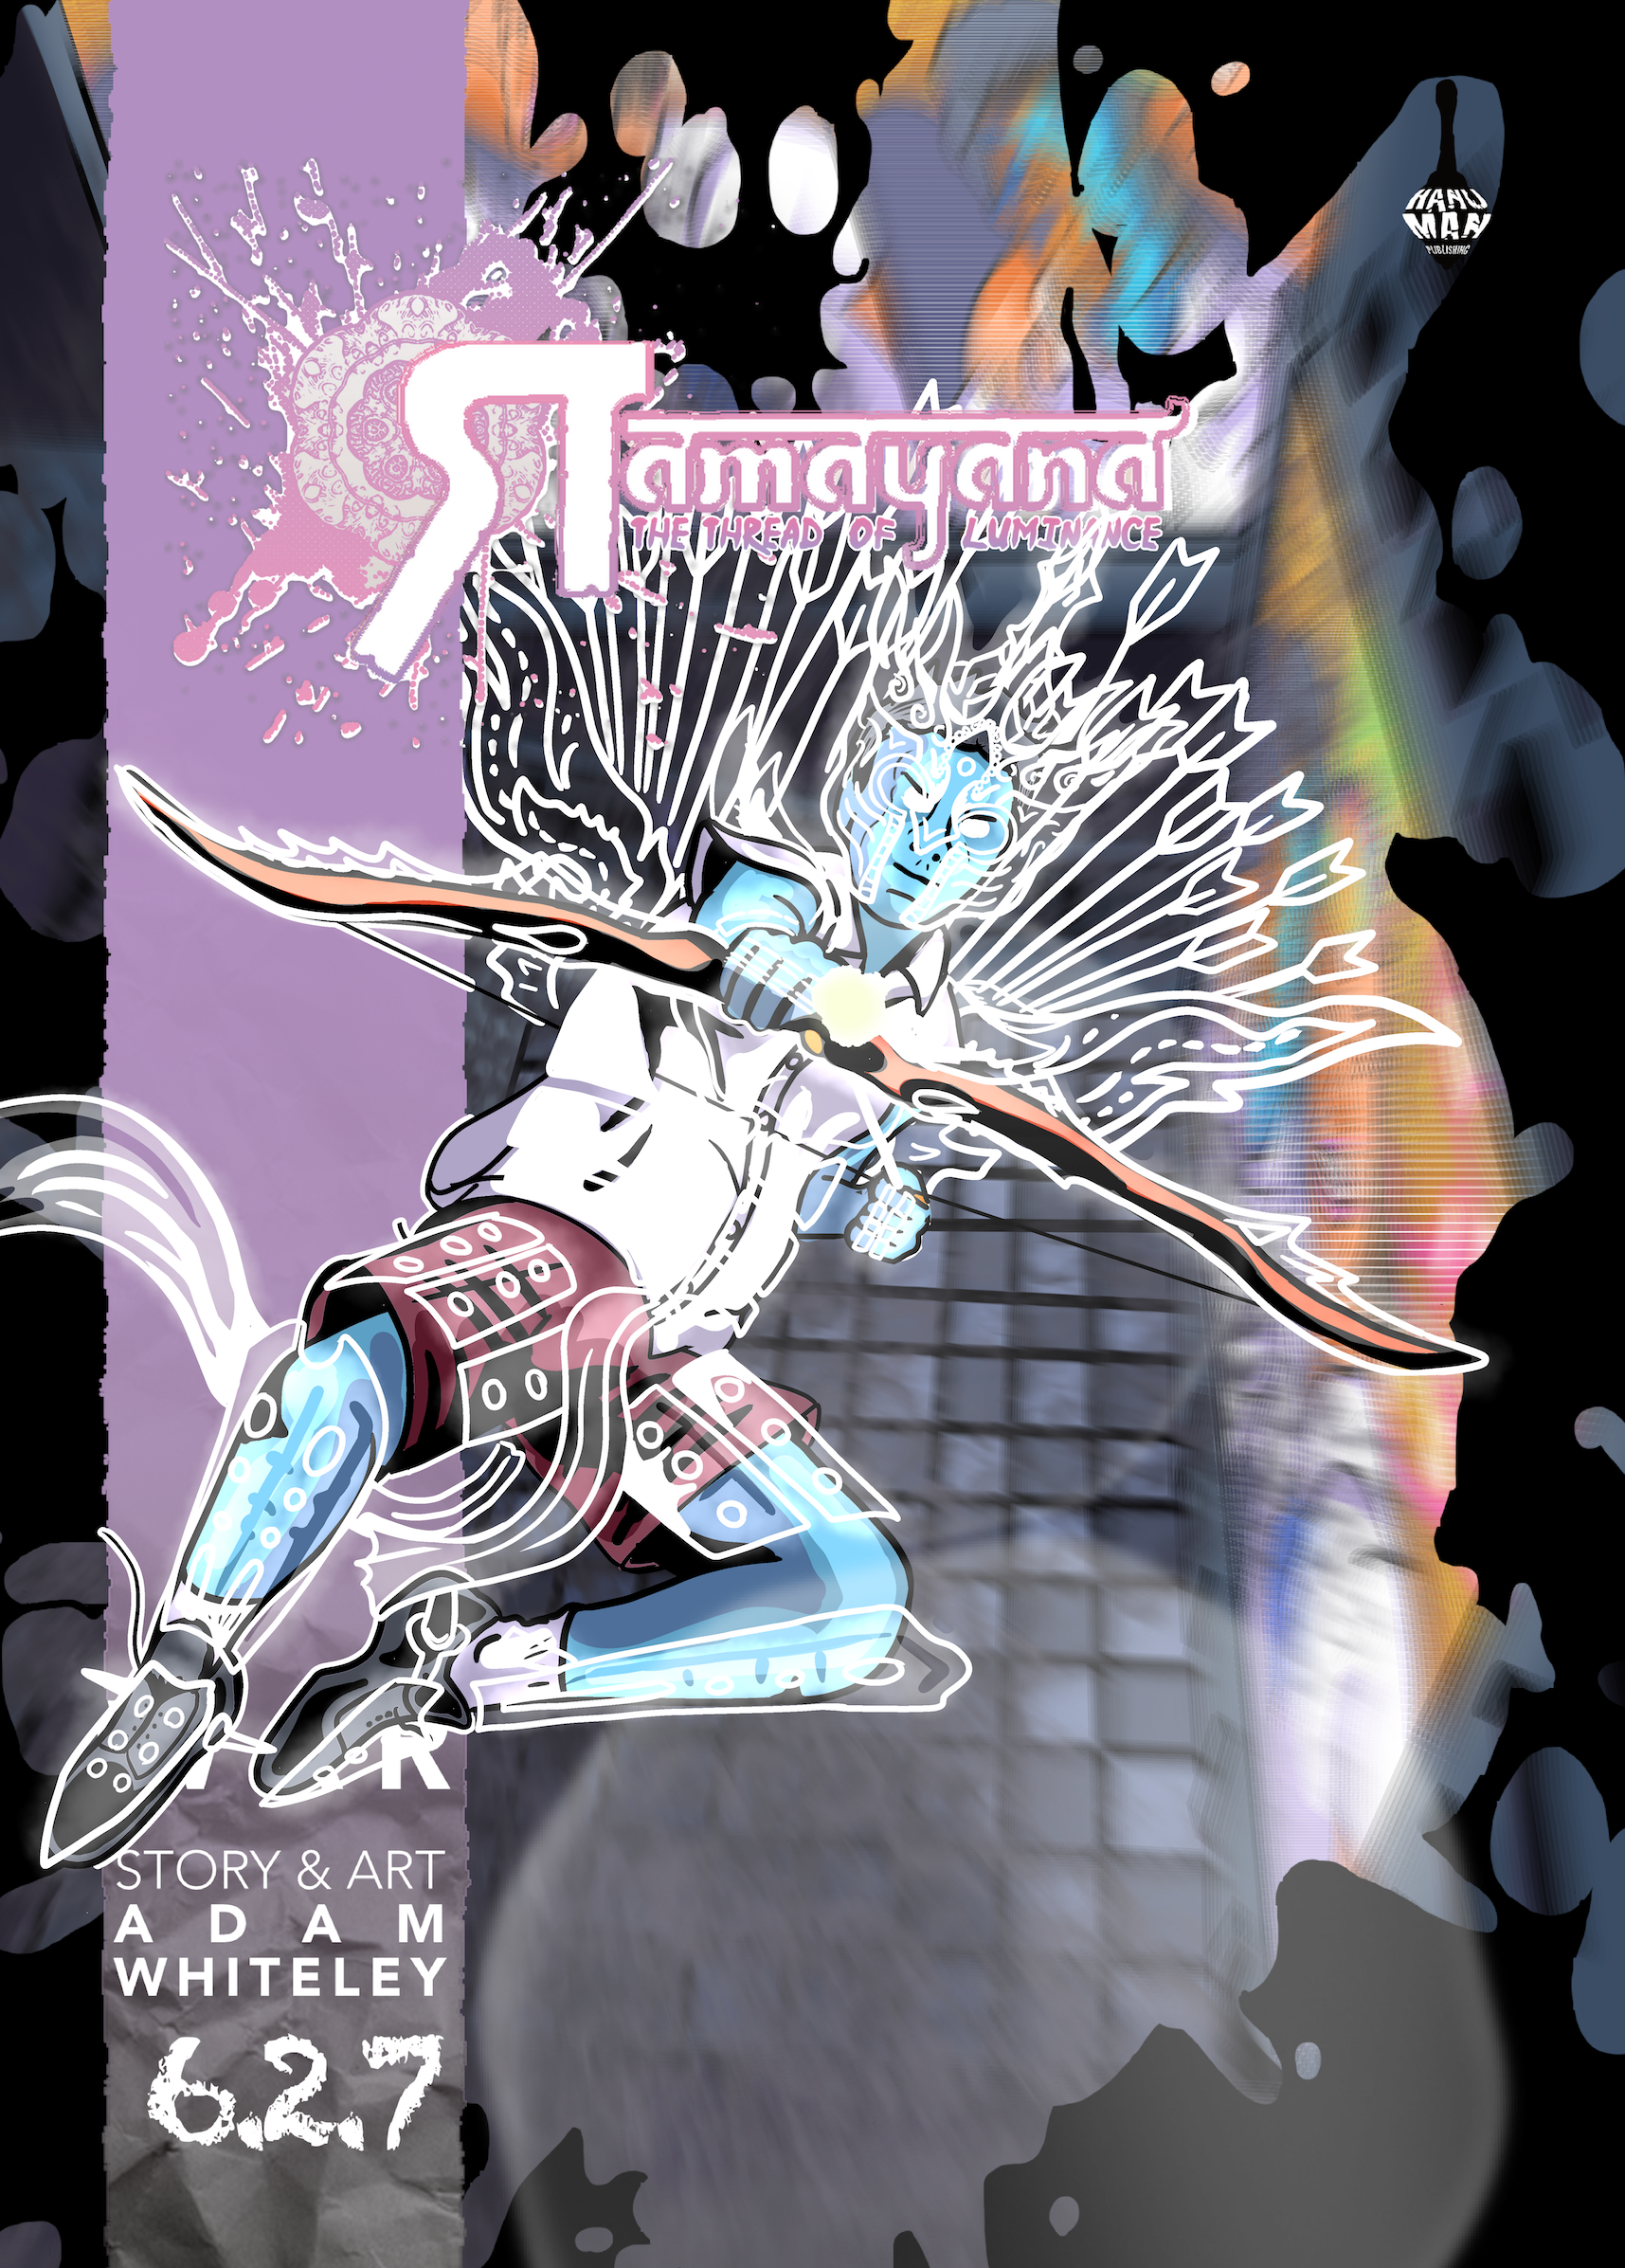 Ramayana The Thread of Luminace WAR Part 2 Issue 7_003 HiRes copy.png